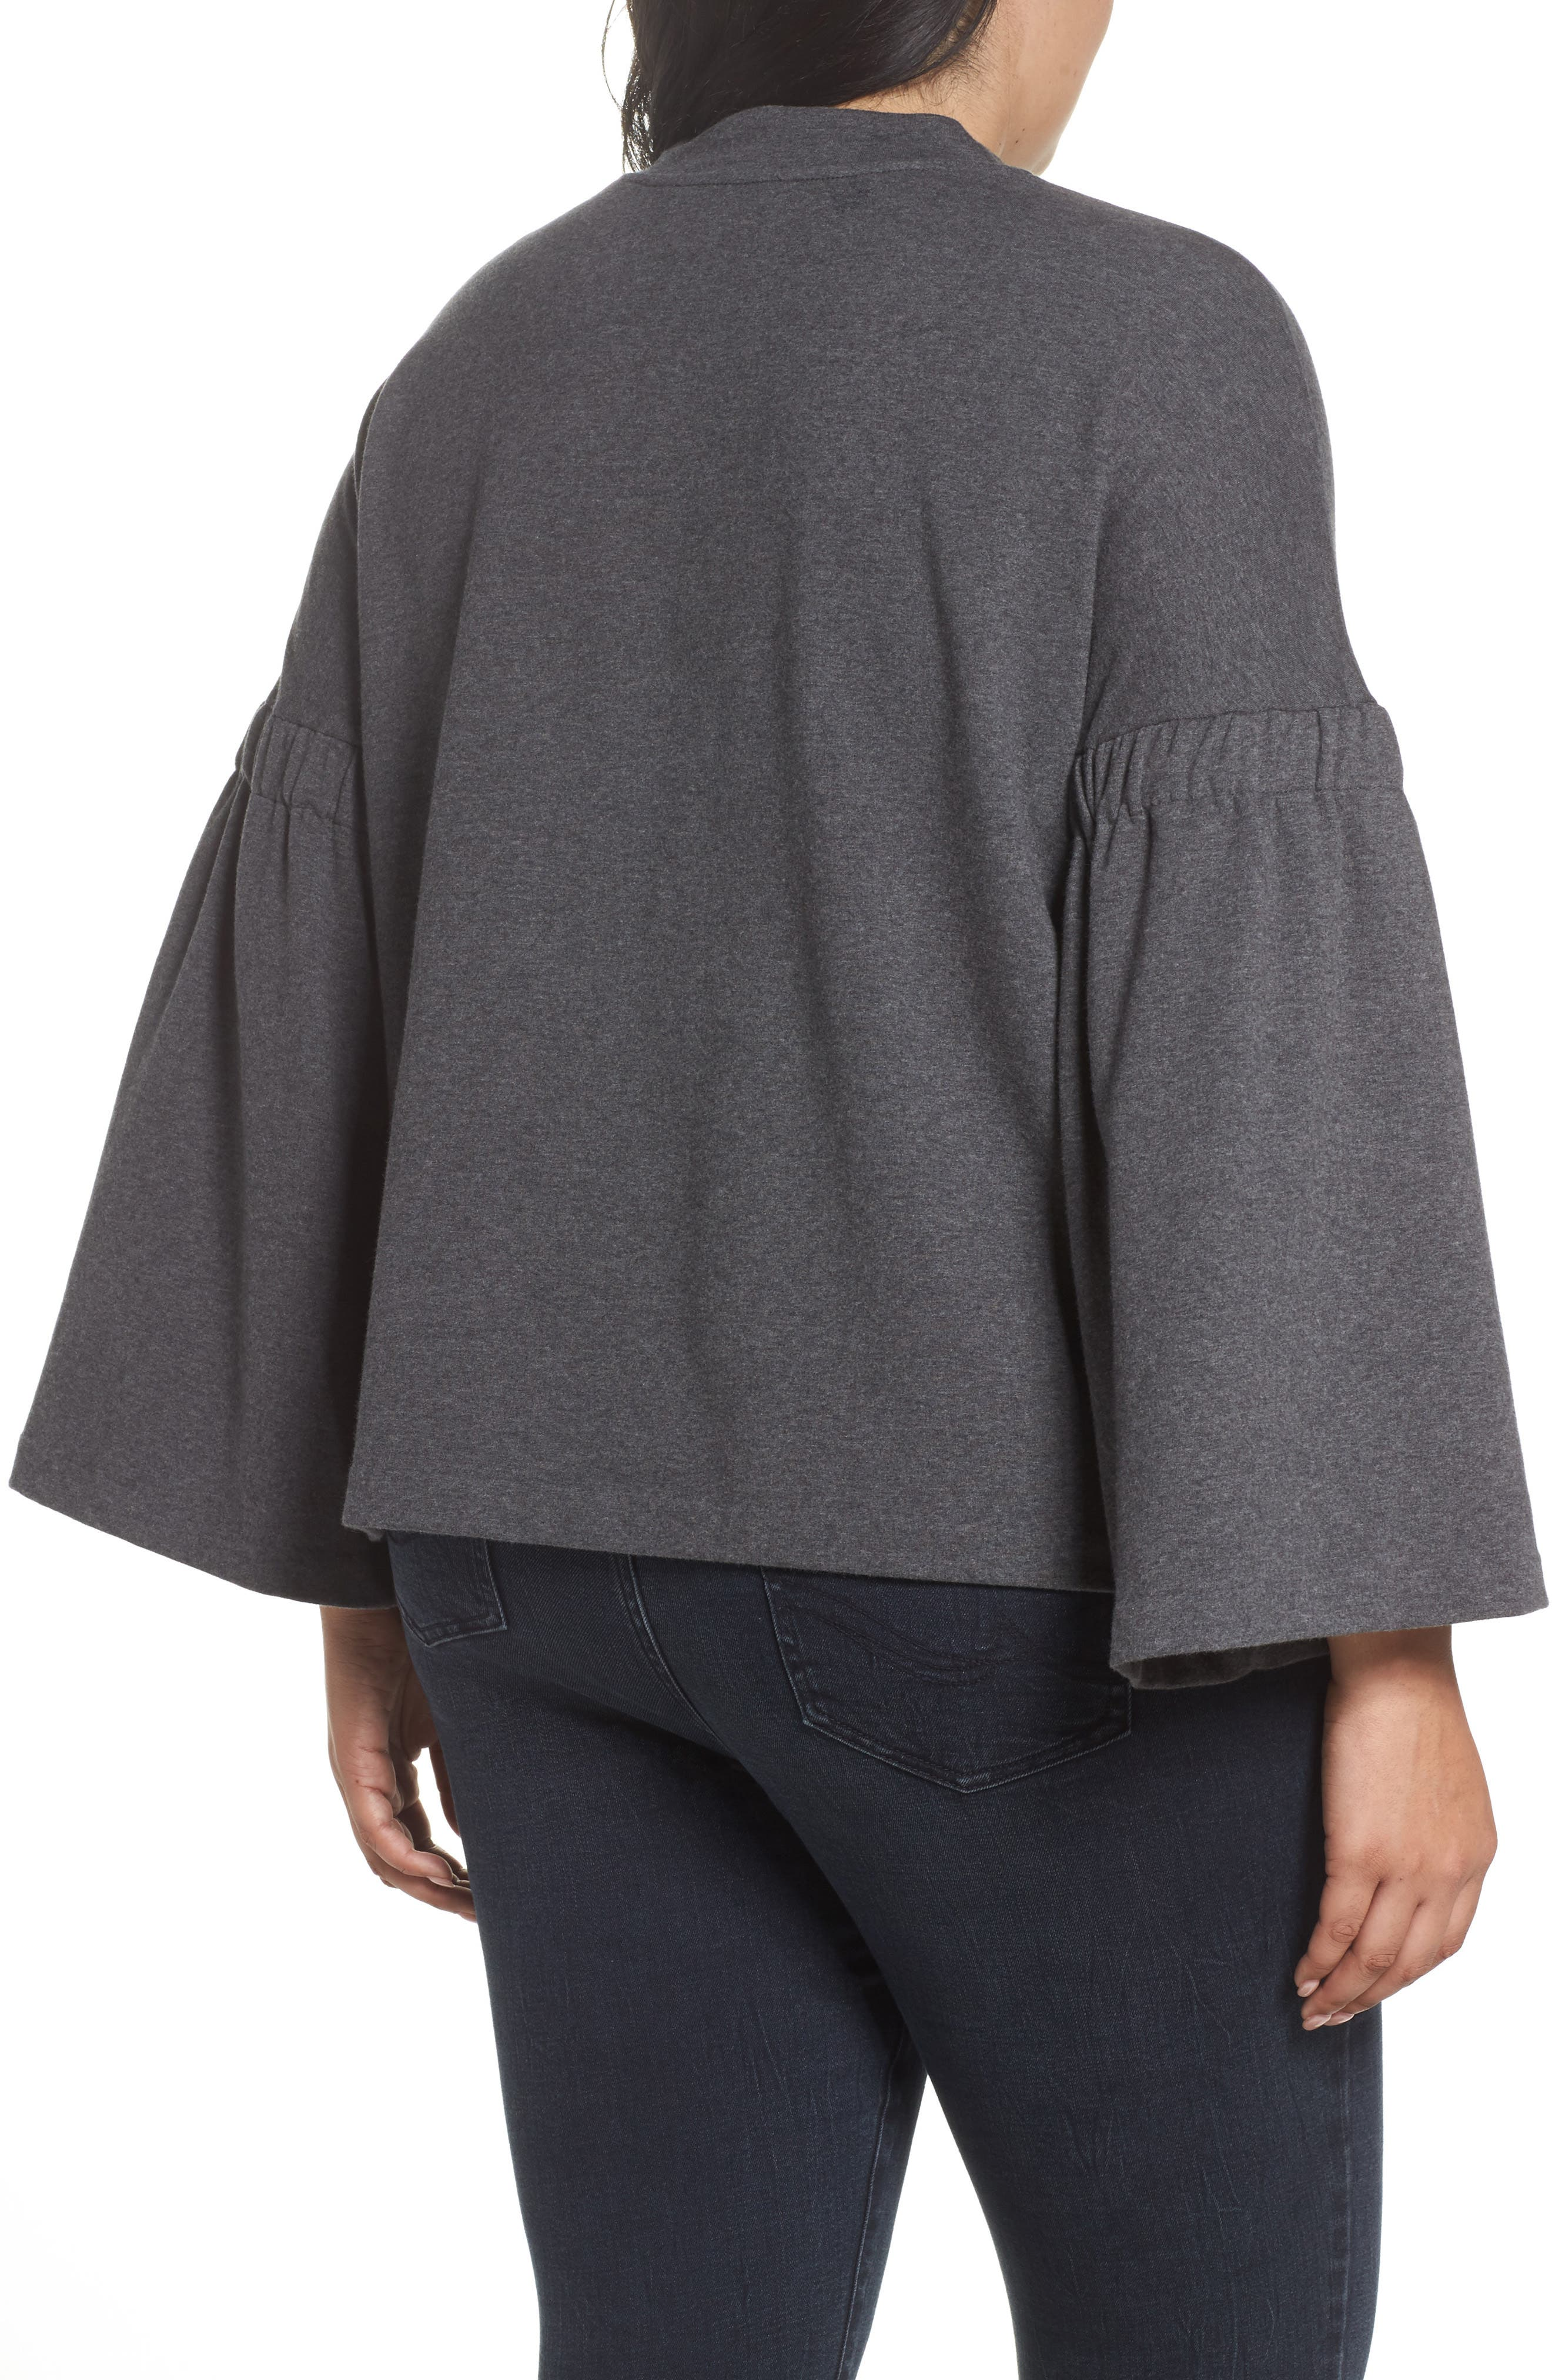 Bell Sleeve Top,                             Alternate thumbnail 2, color,                             023